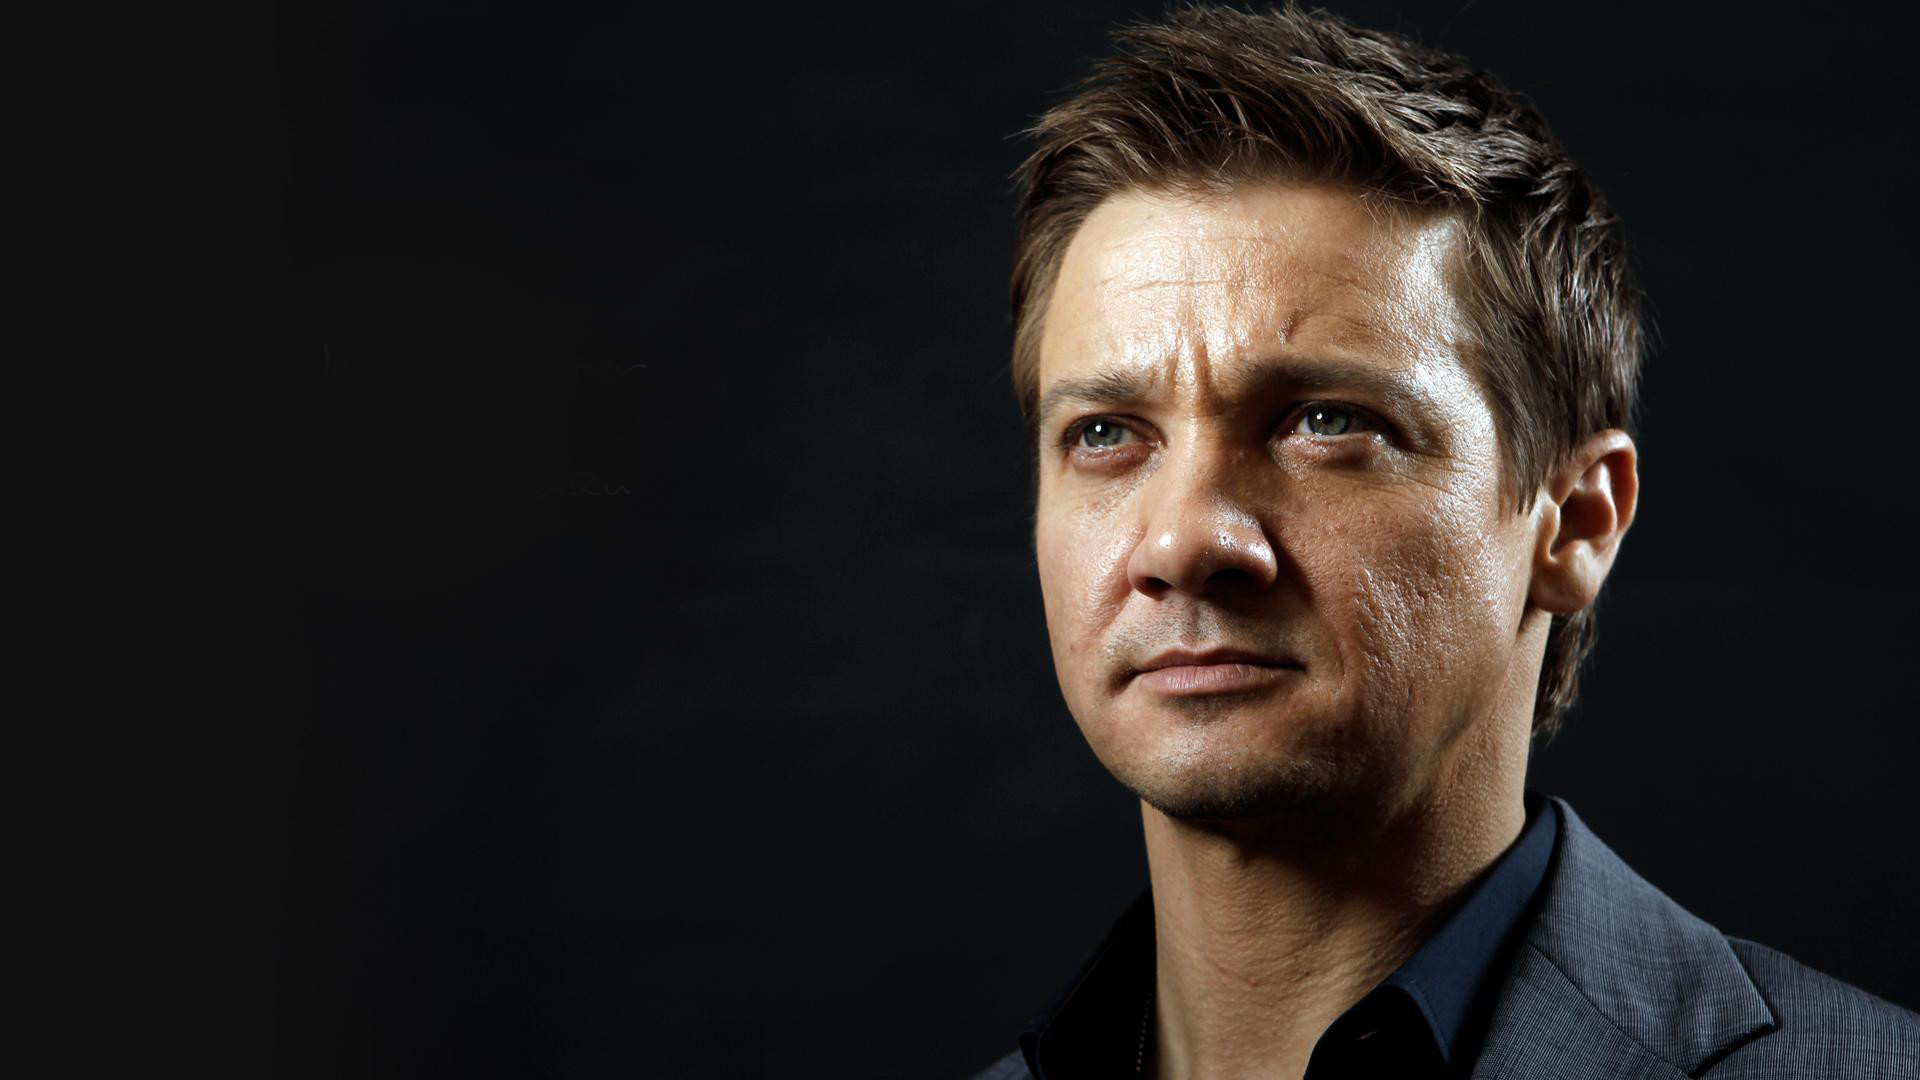 1920x1080 - Jeremy Renner Wallpapers 8